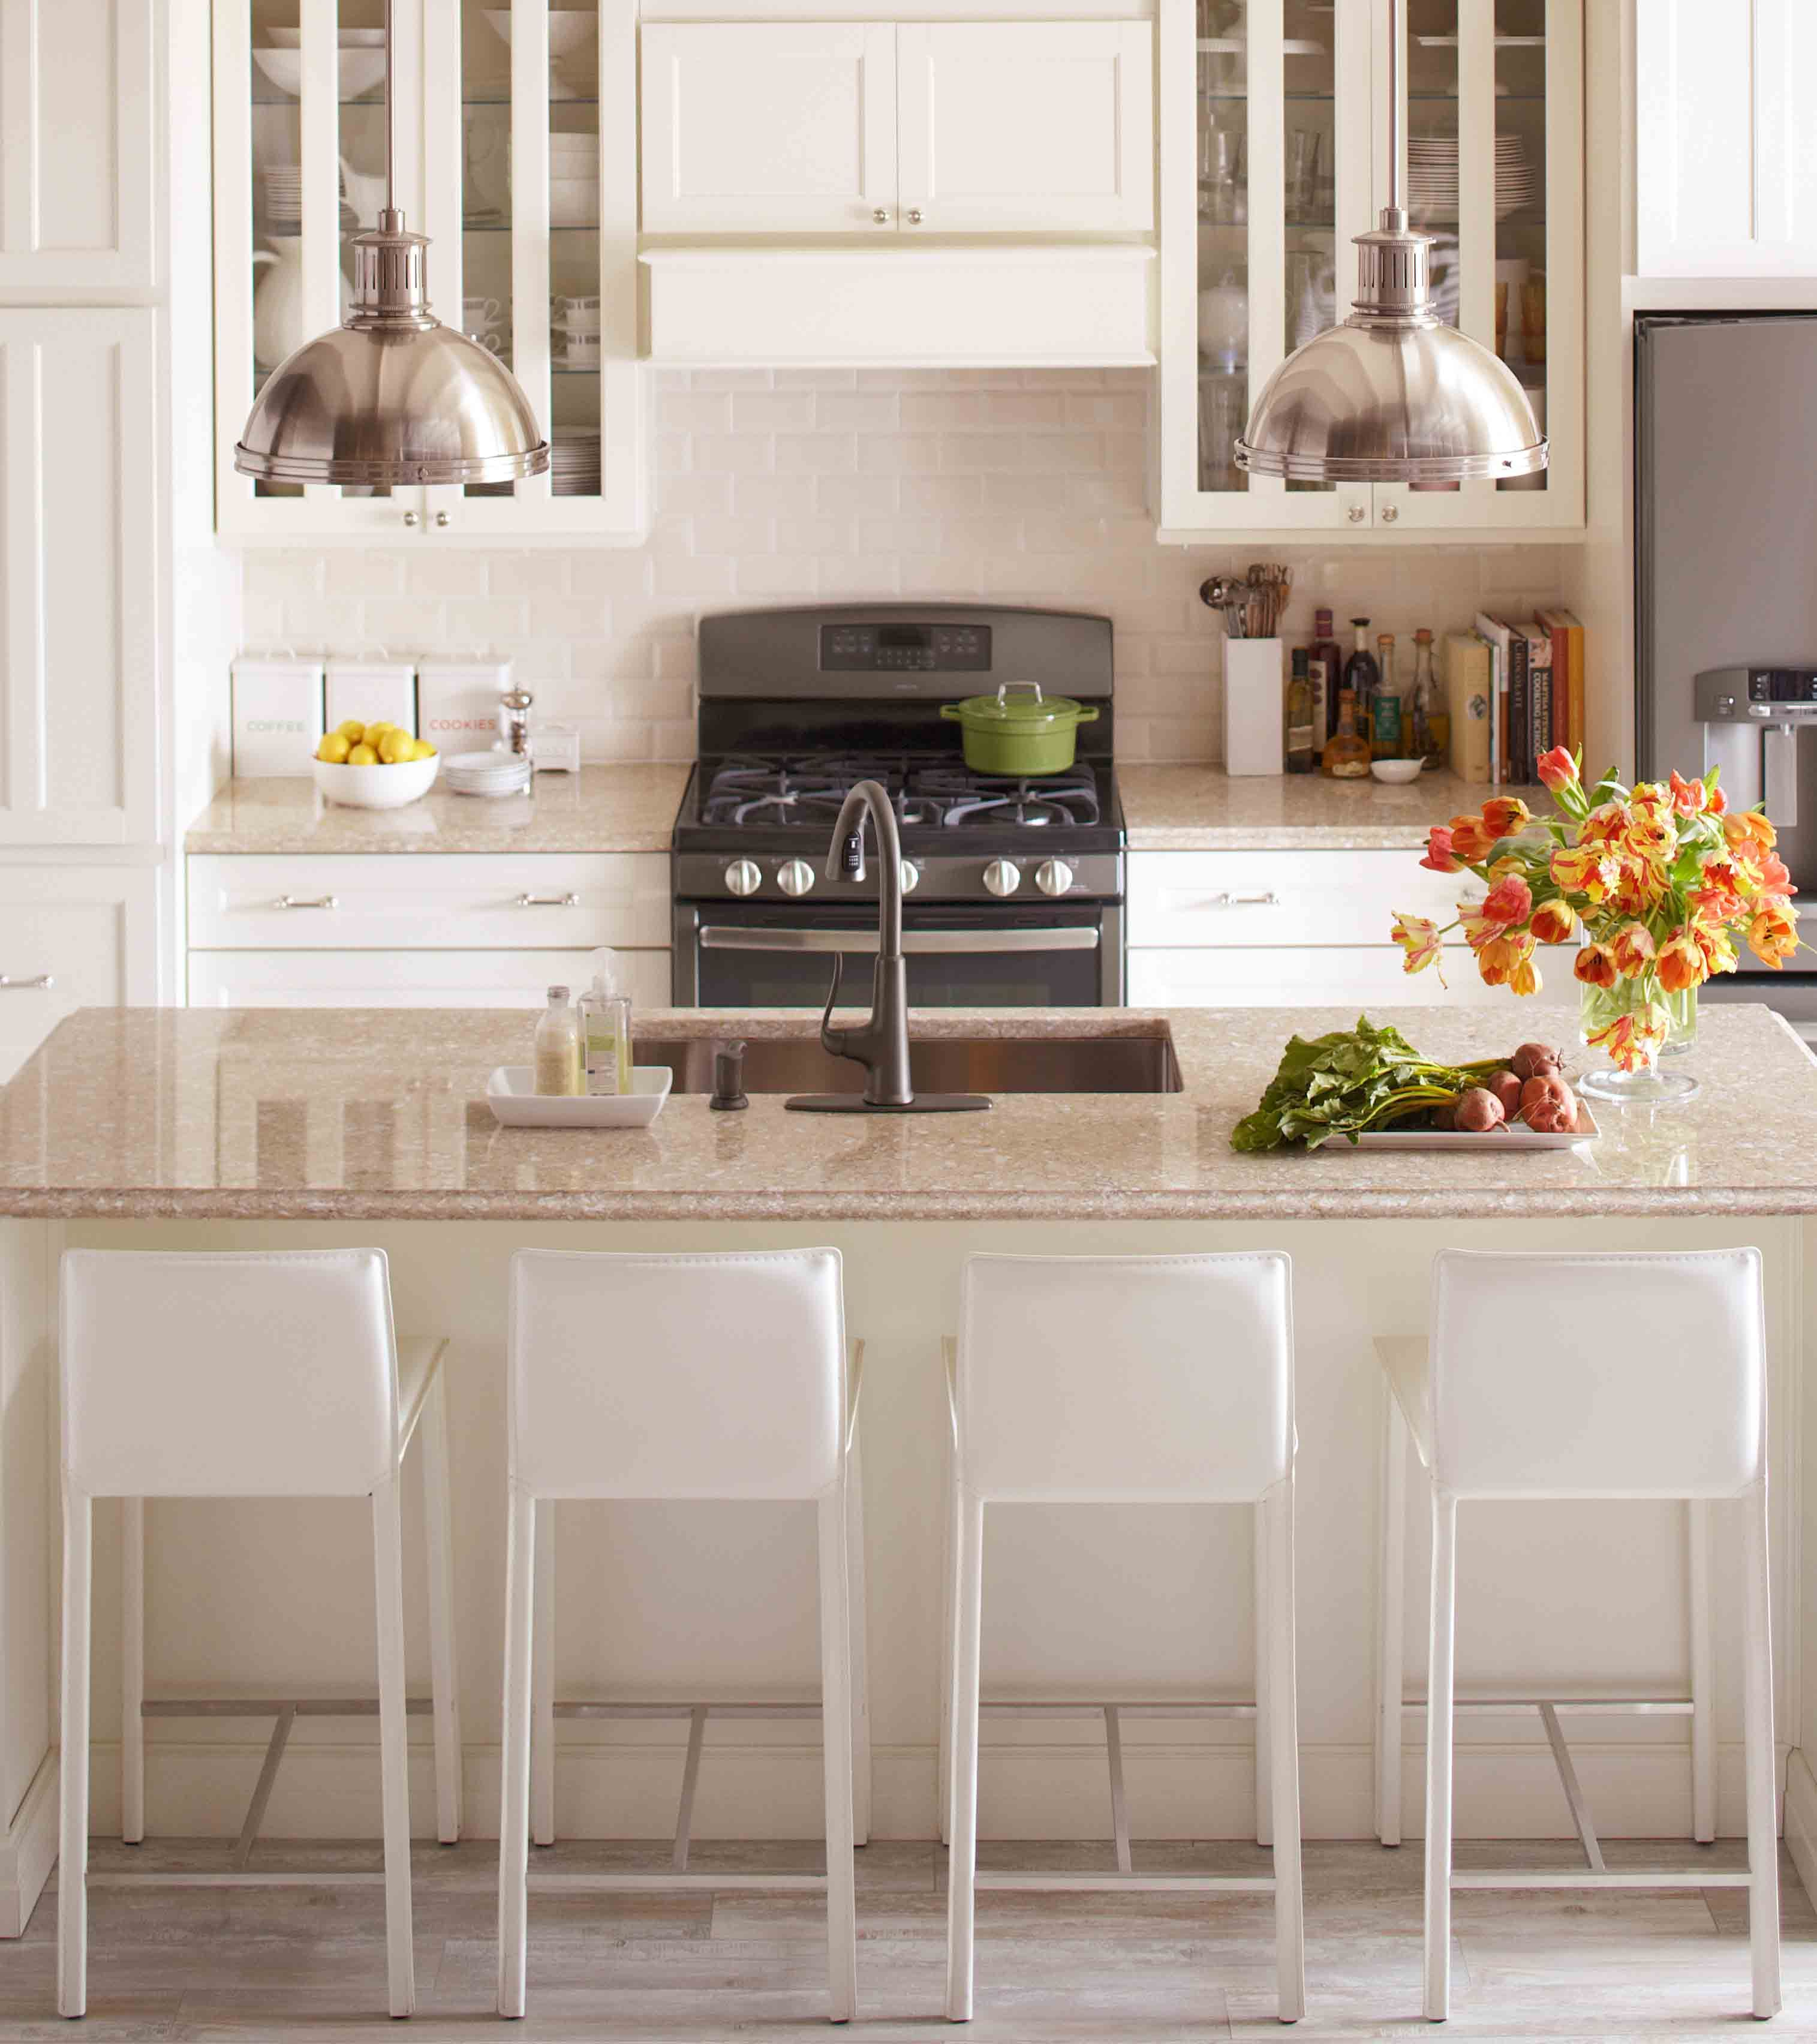 Have The Dreamkitchen You Ve Always Wanted At The Price You Can Afford Marthastewartliving At The Kitchen Remodel New Kitchen New Kitchen Cabinets